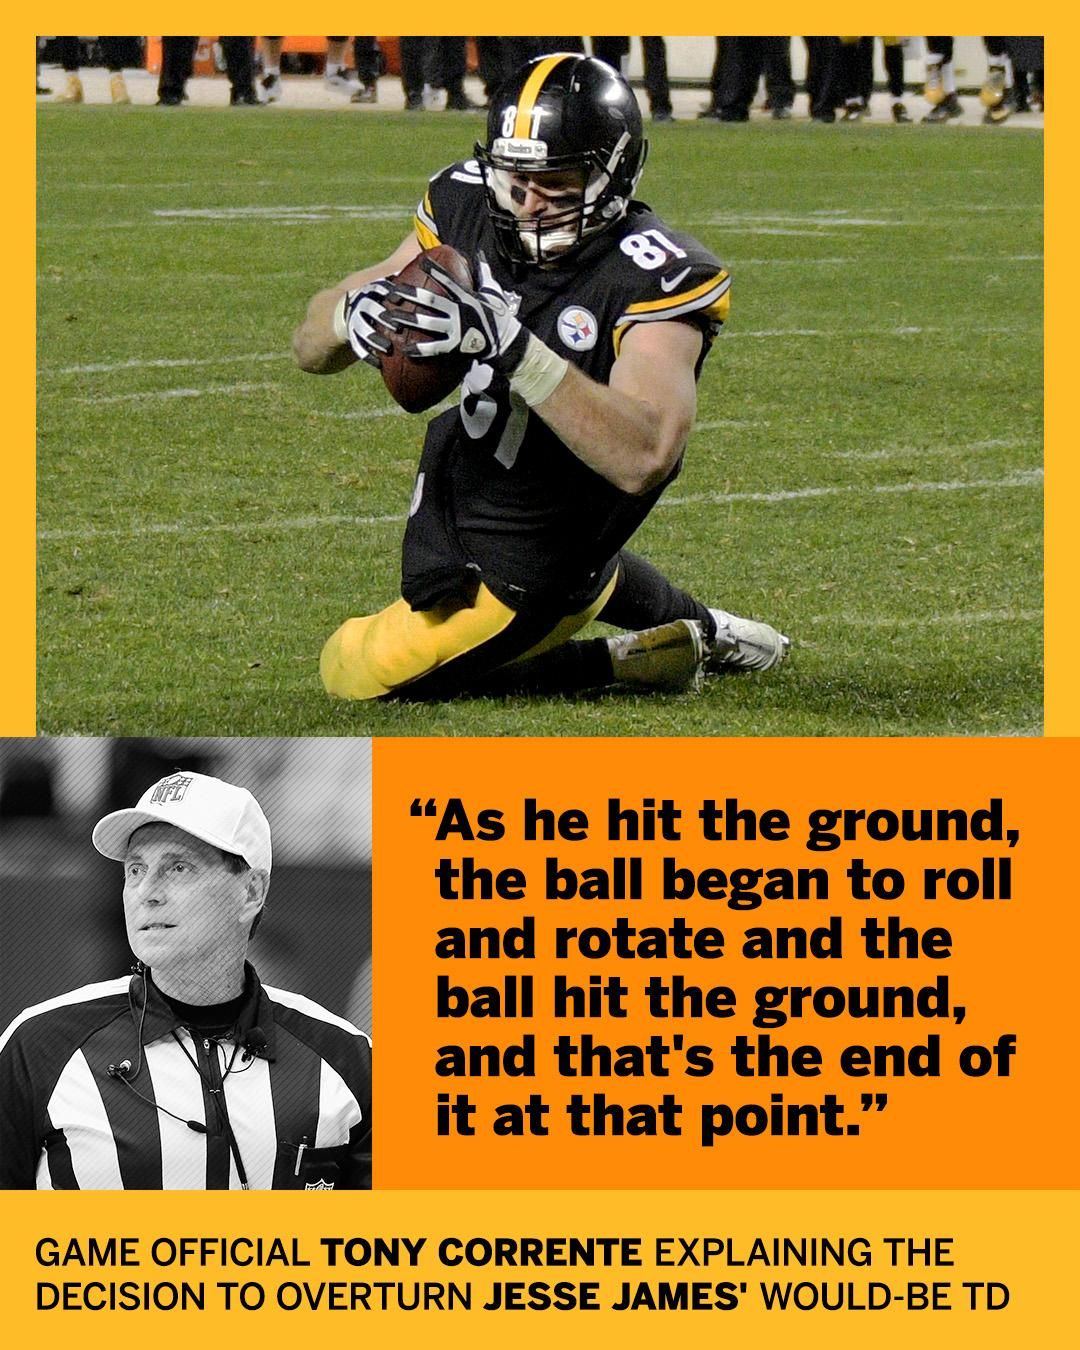 After the Patriots-Steelers game, the refs explained the call. https://t.co/brUkvRdq1h